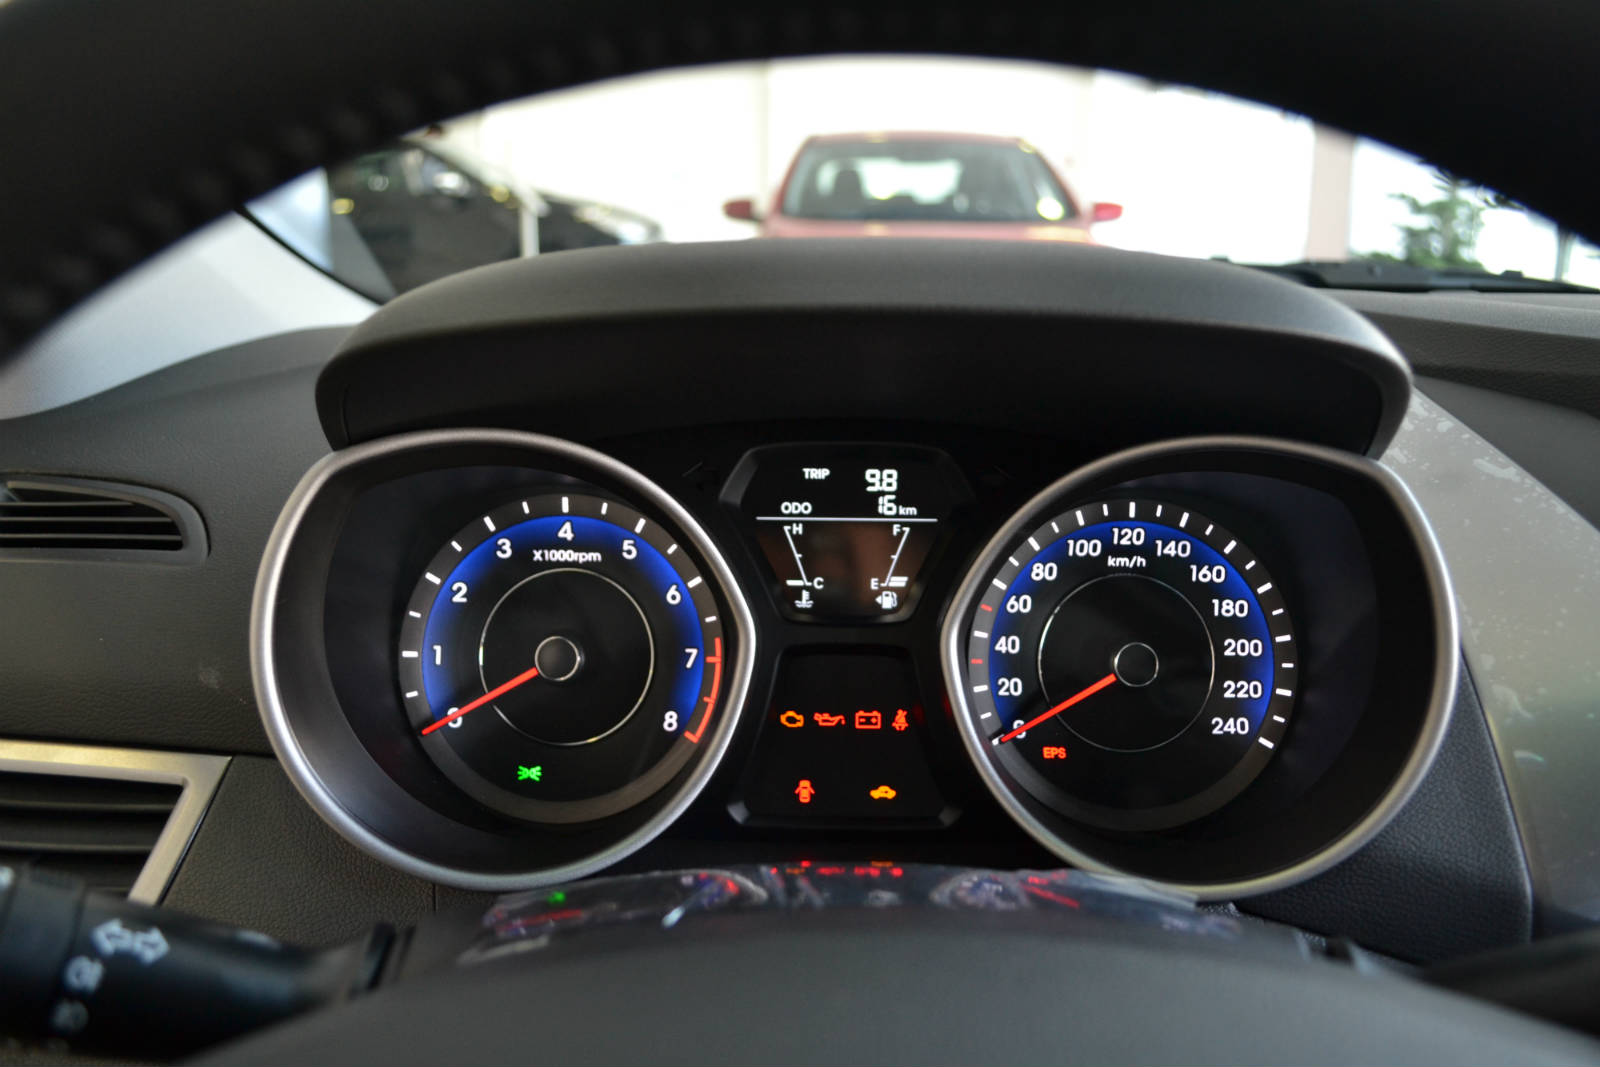 Hyundai Elantra Interior 2013 >> hyundai elantra interior dash - Muscle Cars Zone!